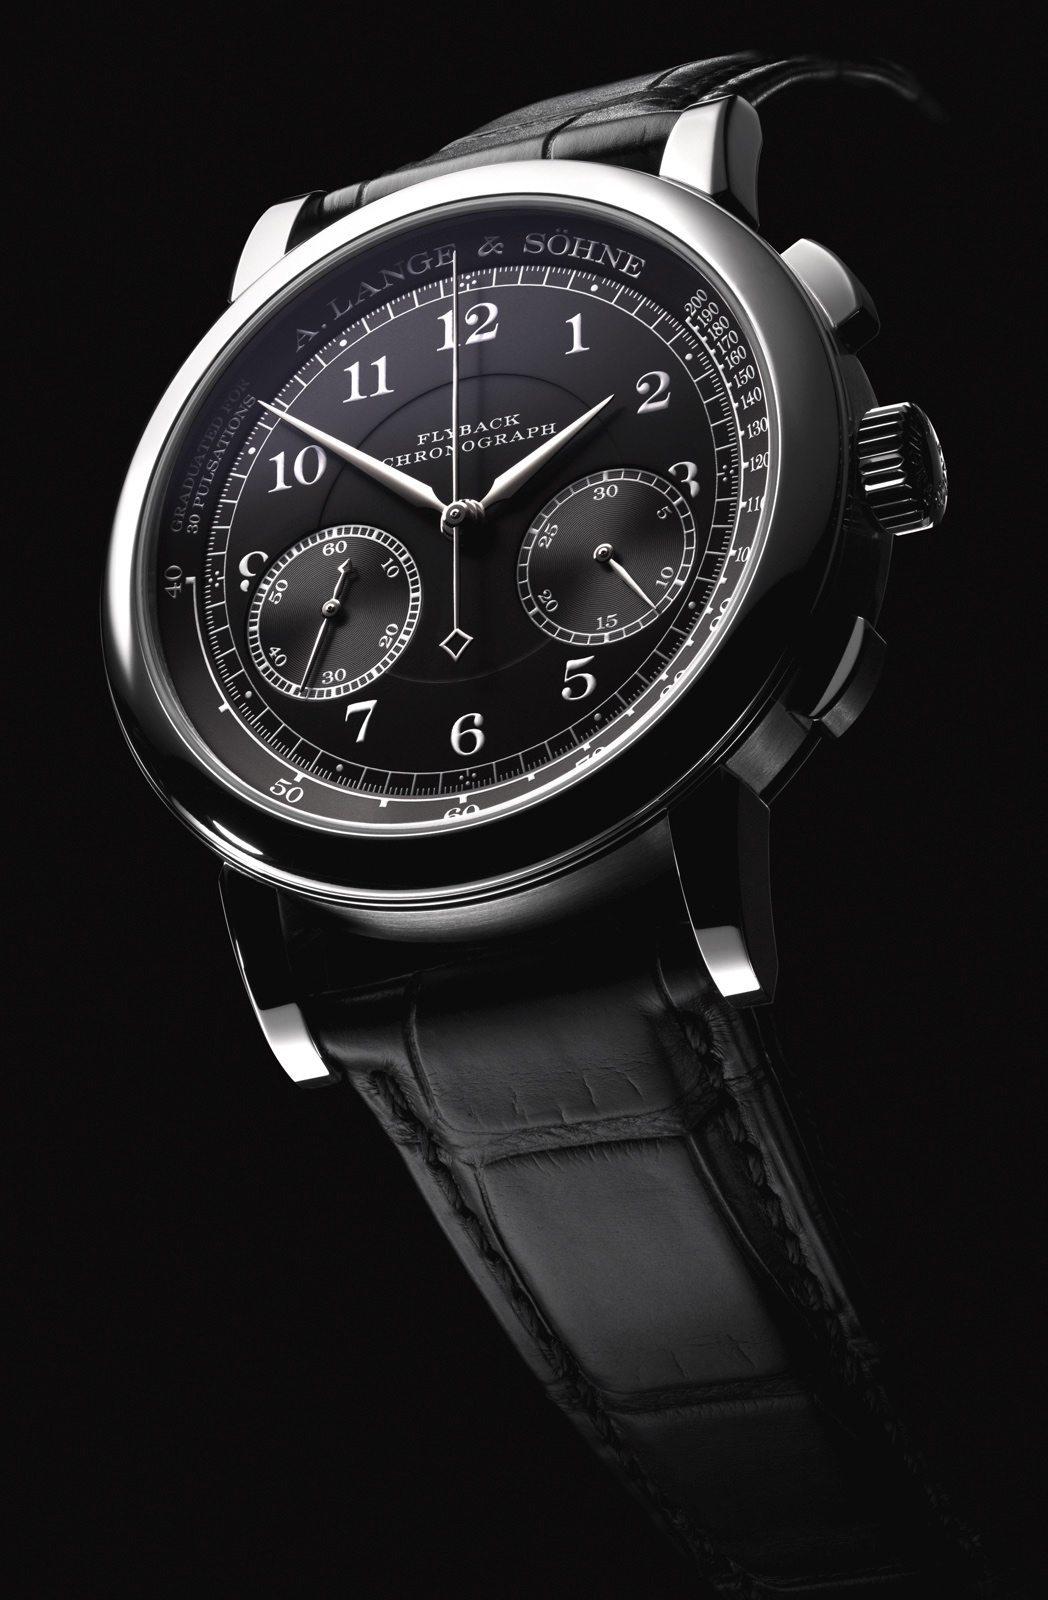 Lange 1815 Chronograph Complet